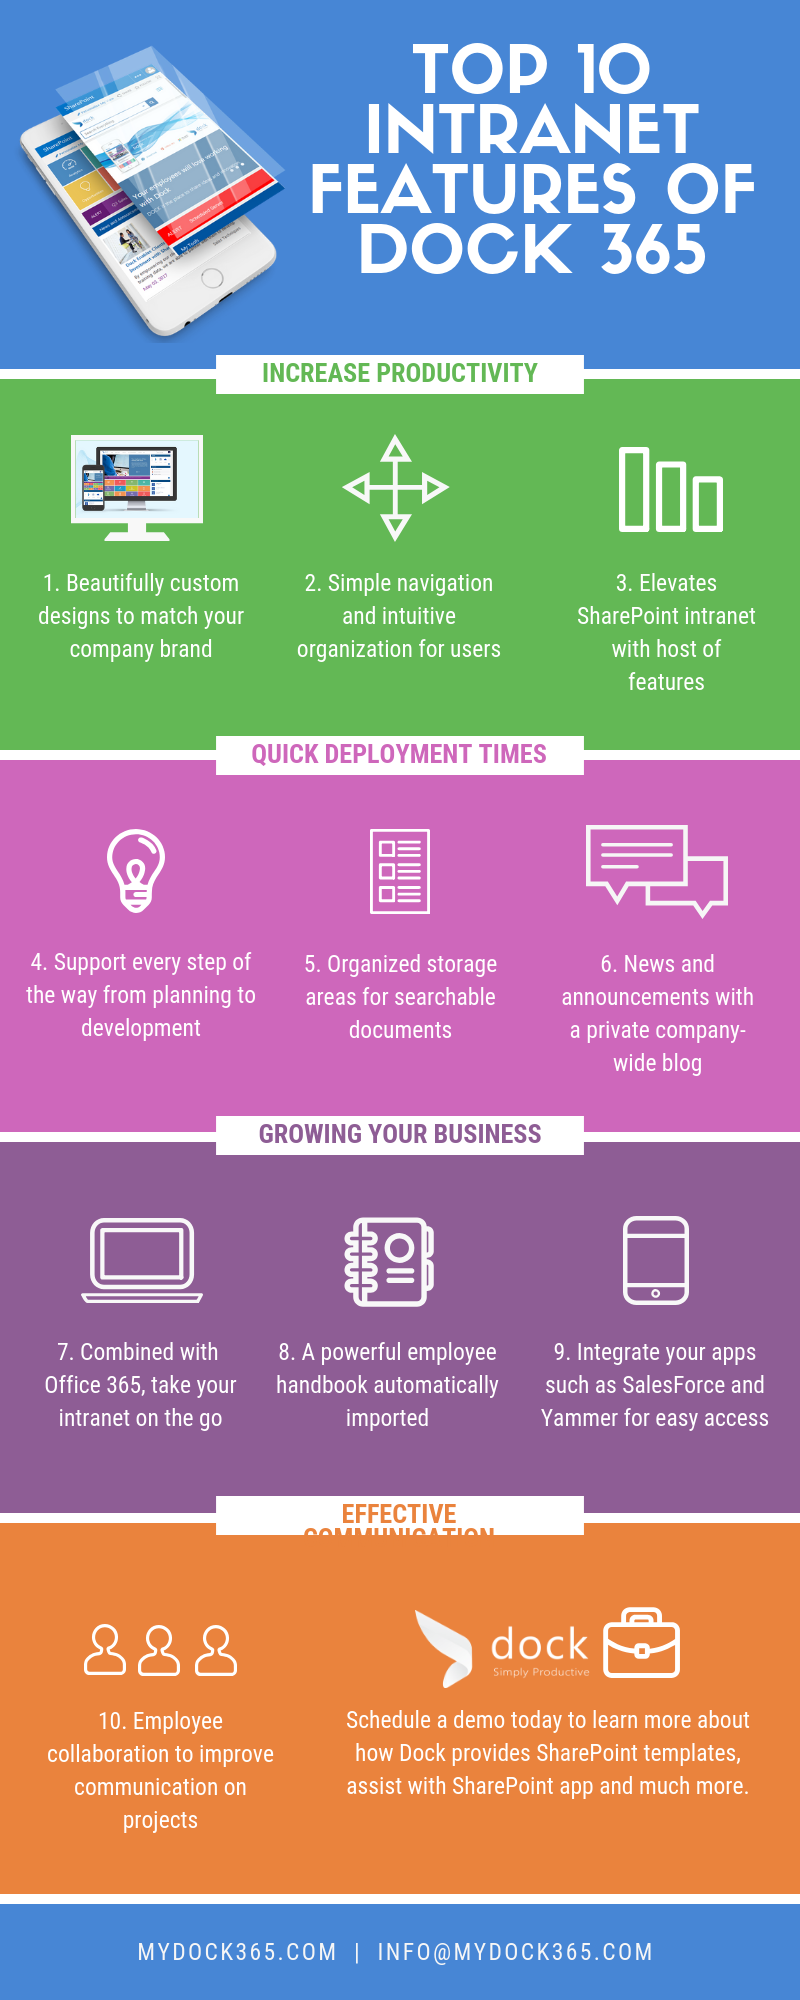 Top 10 Intranet Features infographic